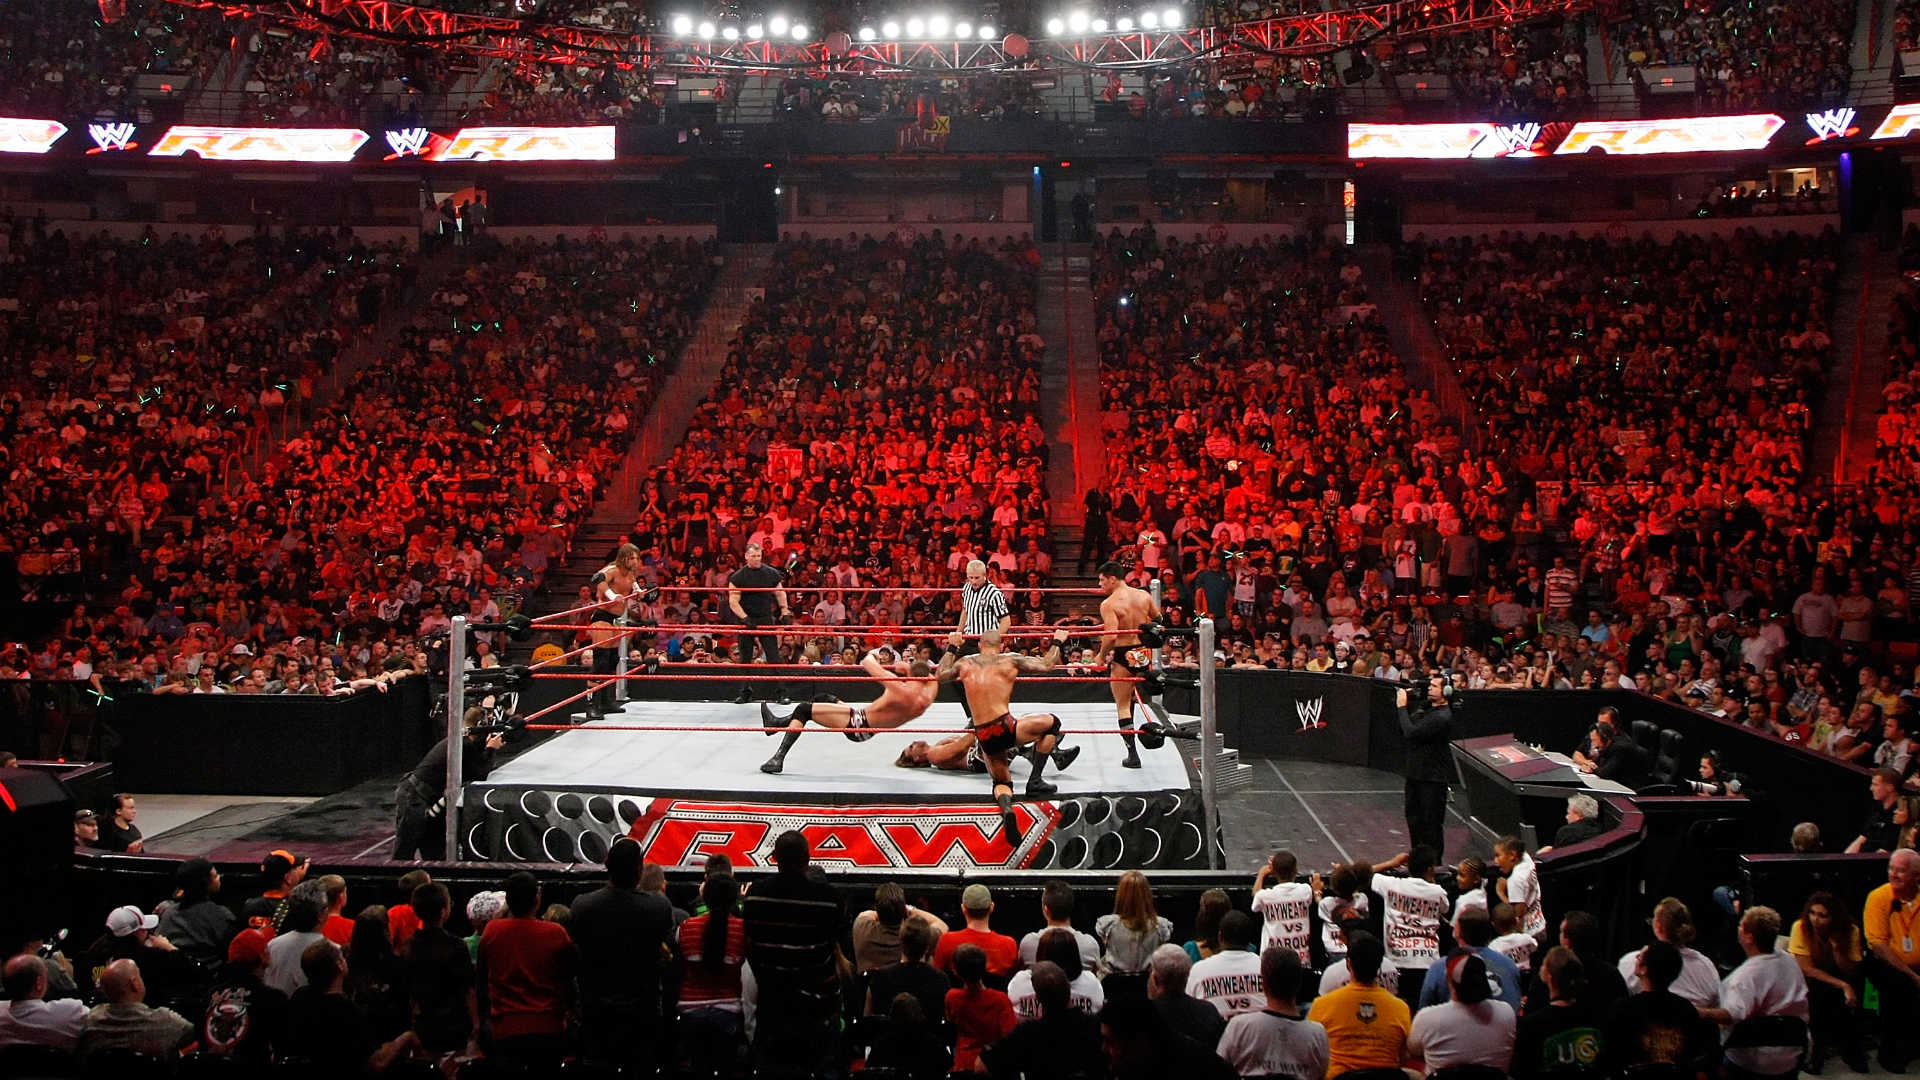 Wwe Shakes Up Announcer Teams For Raw And Smackdown Wwe